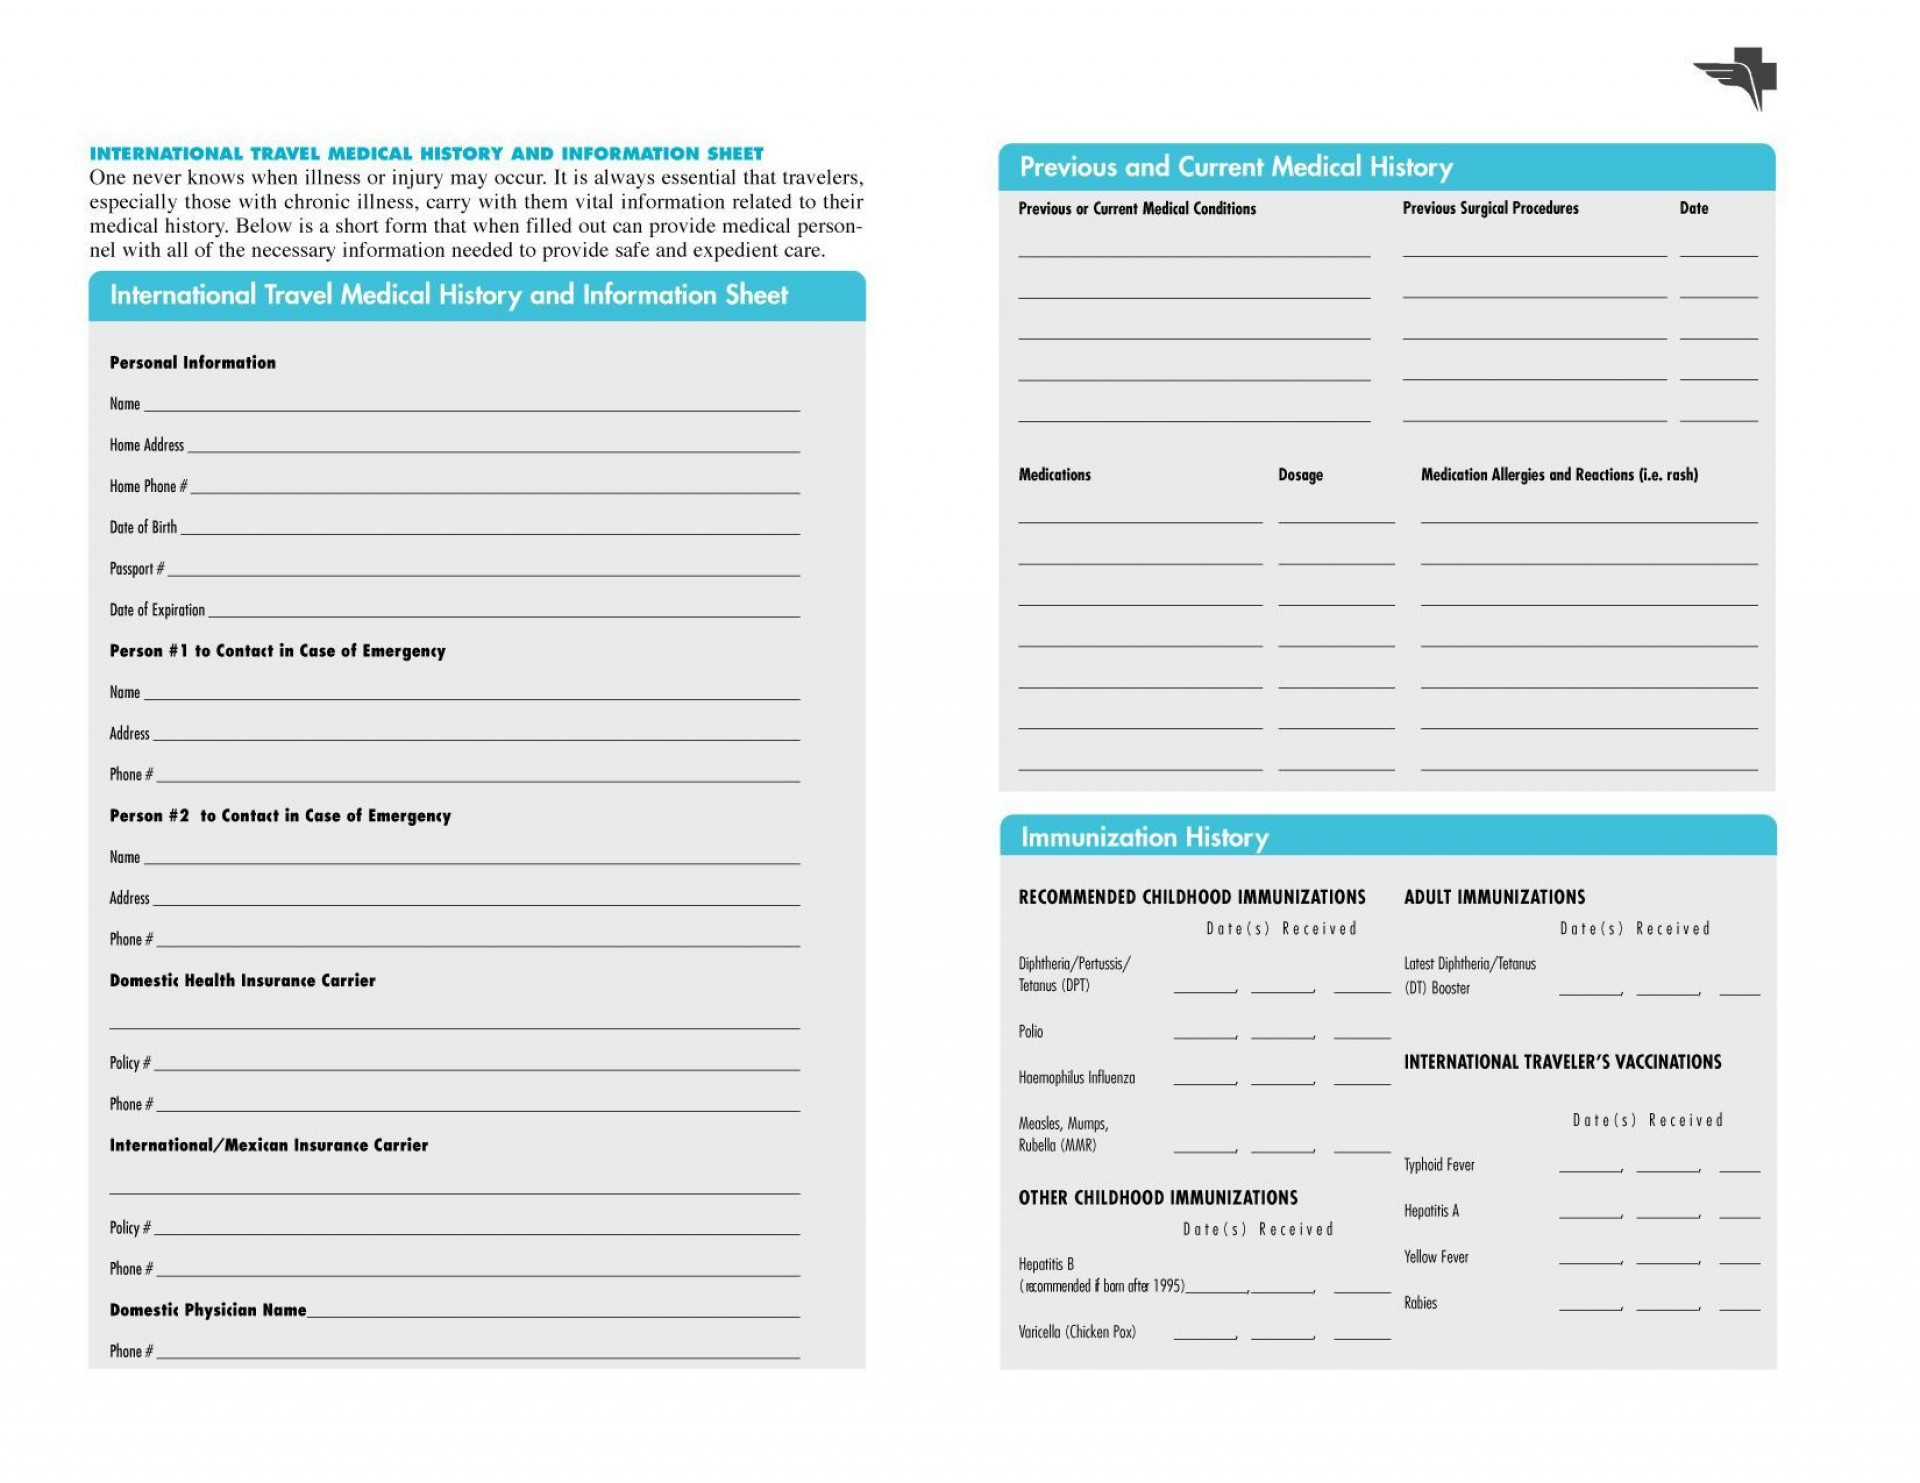 004 Fantastic Family Medical History Template Free Image  Questionnaire1920